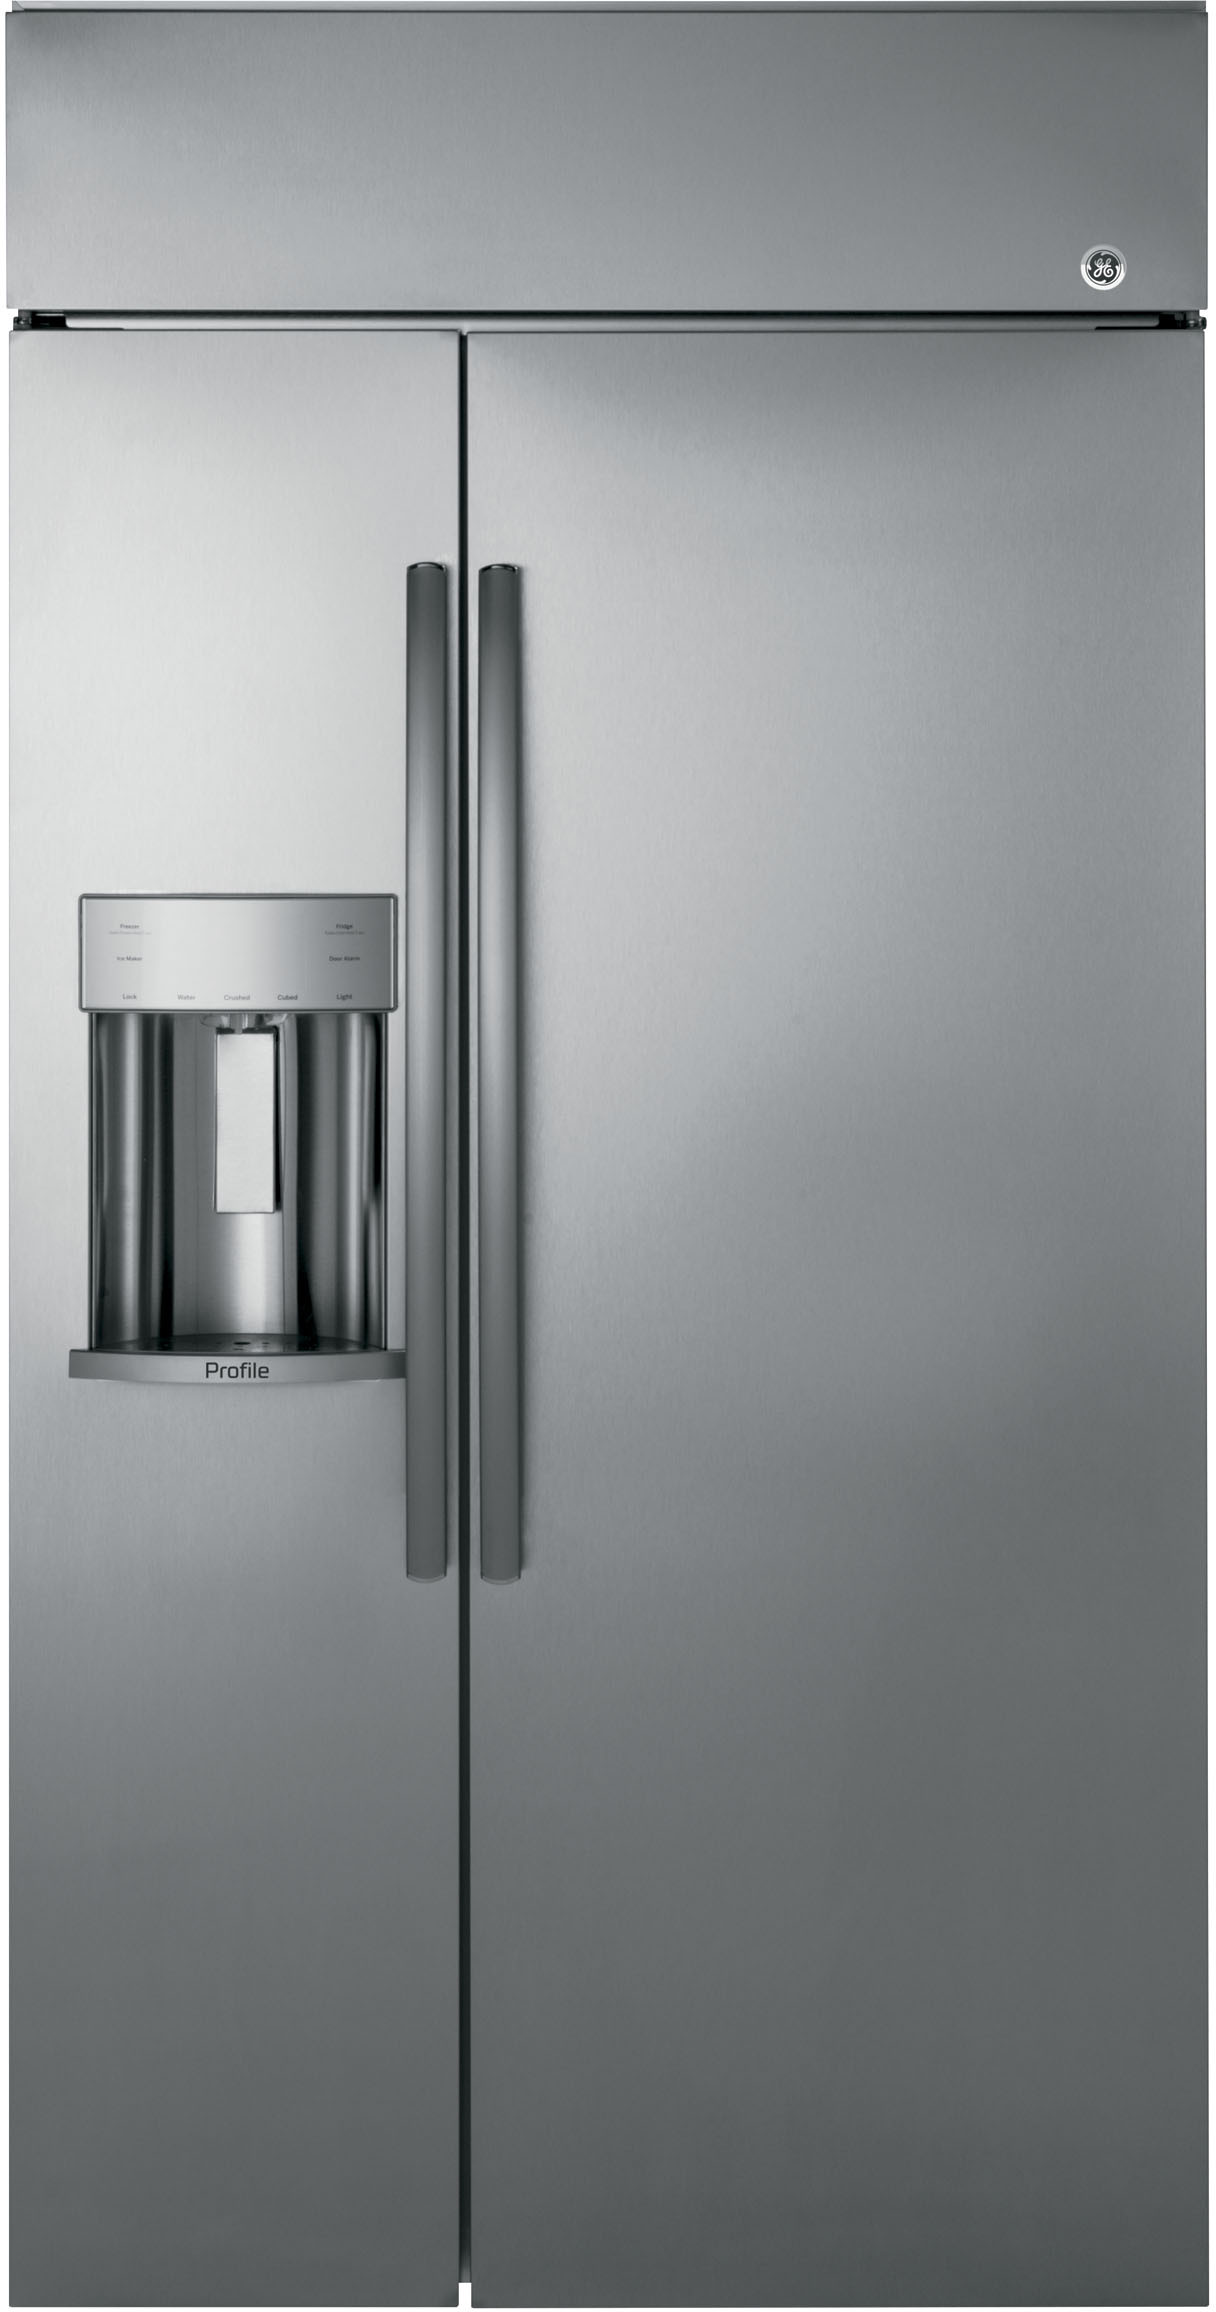 Kochinsel Esstheke Side By Side Miele Perfect With Side By Side Miele Trendy Miele